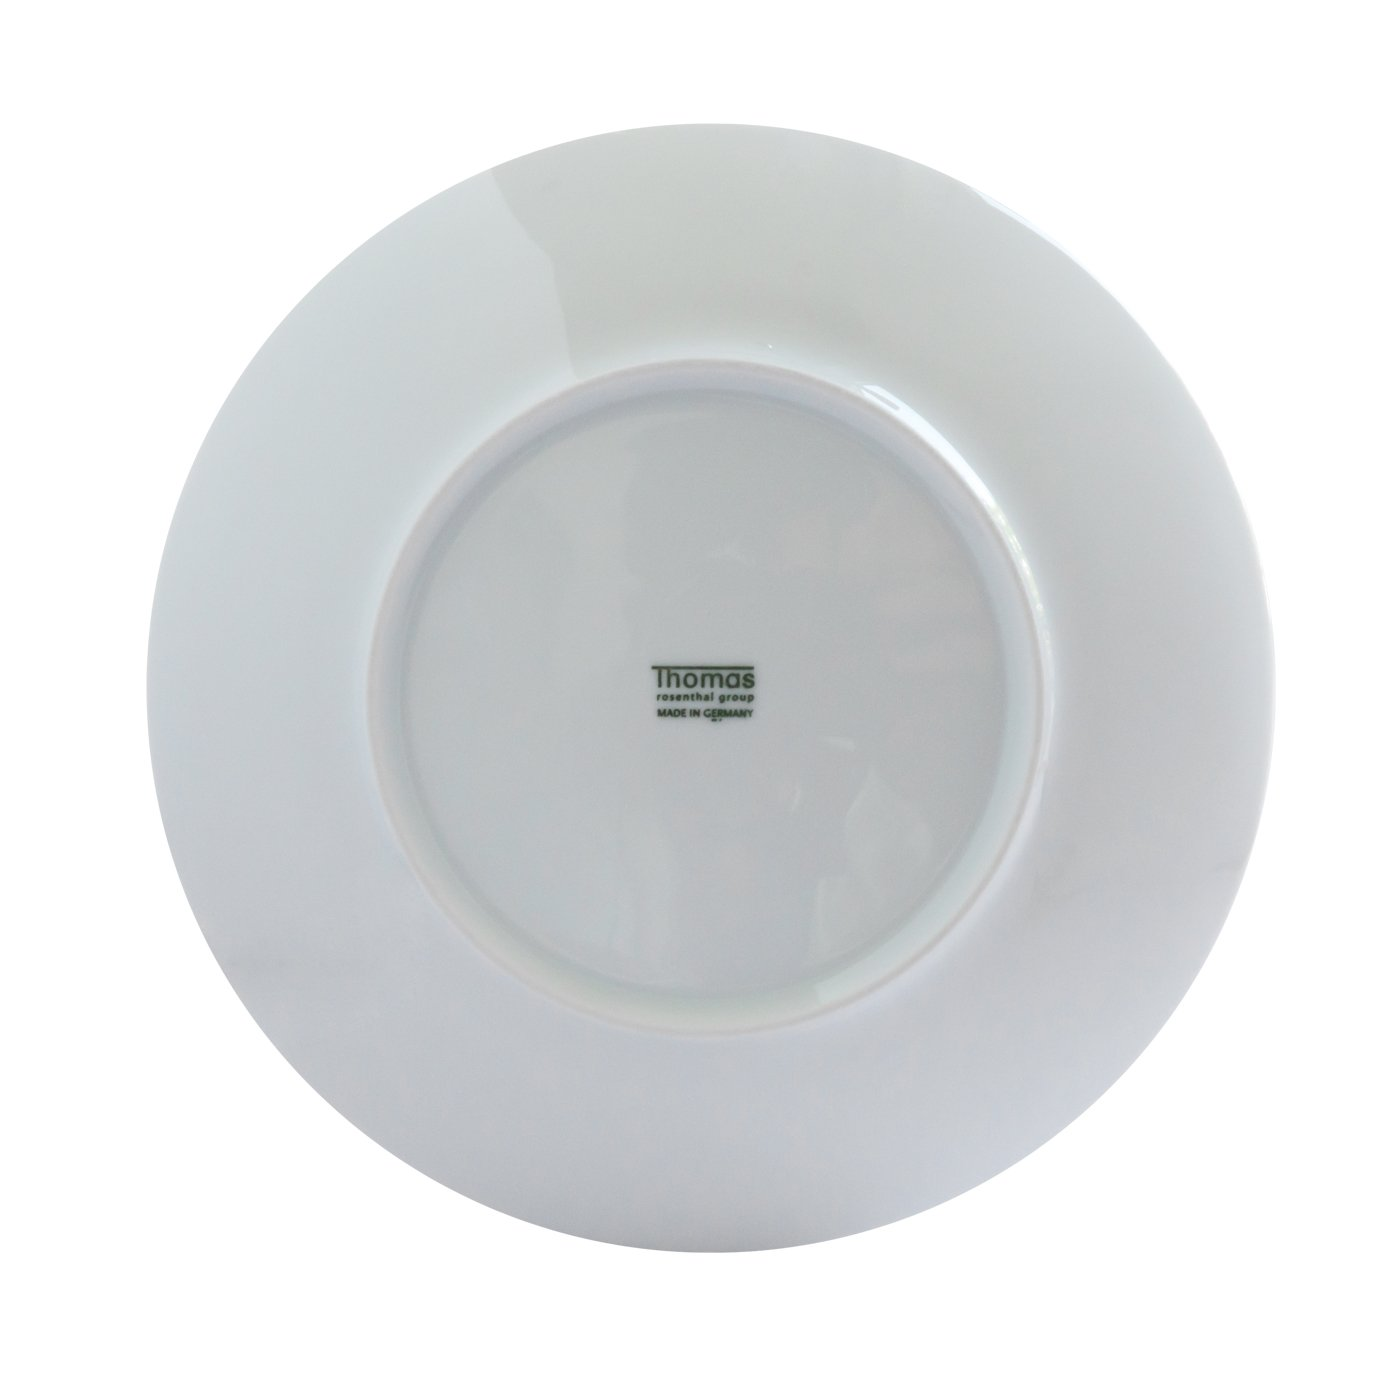 Tableware Thomas: reviews about German quality